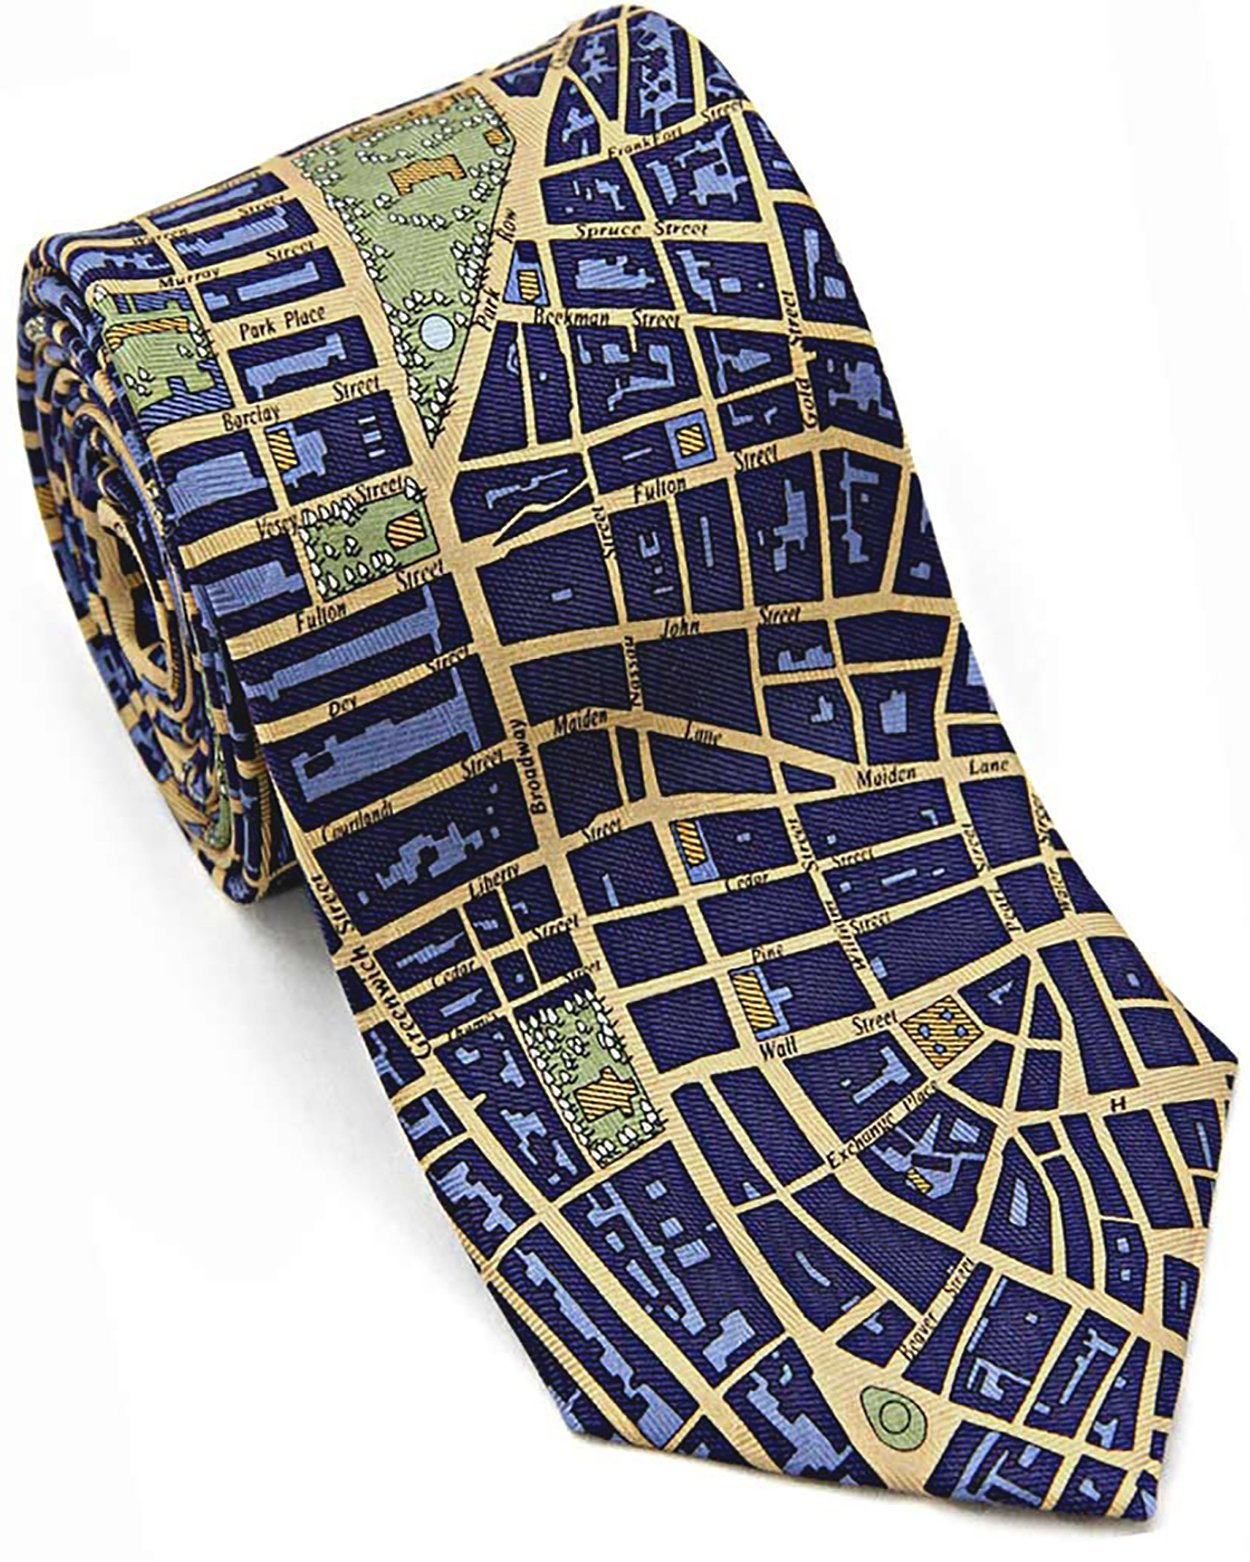 Josh Bach Mens CIVITAS Map of New York City Silk Necktie in Blue/Gold by Josh Bach (Image #1)